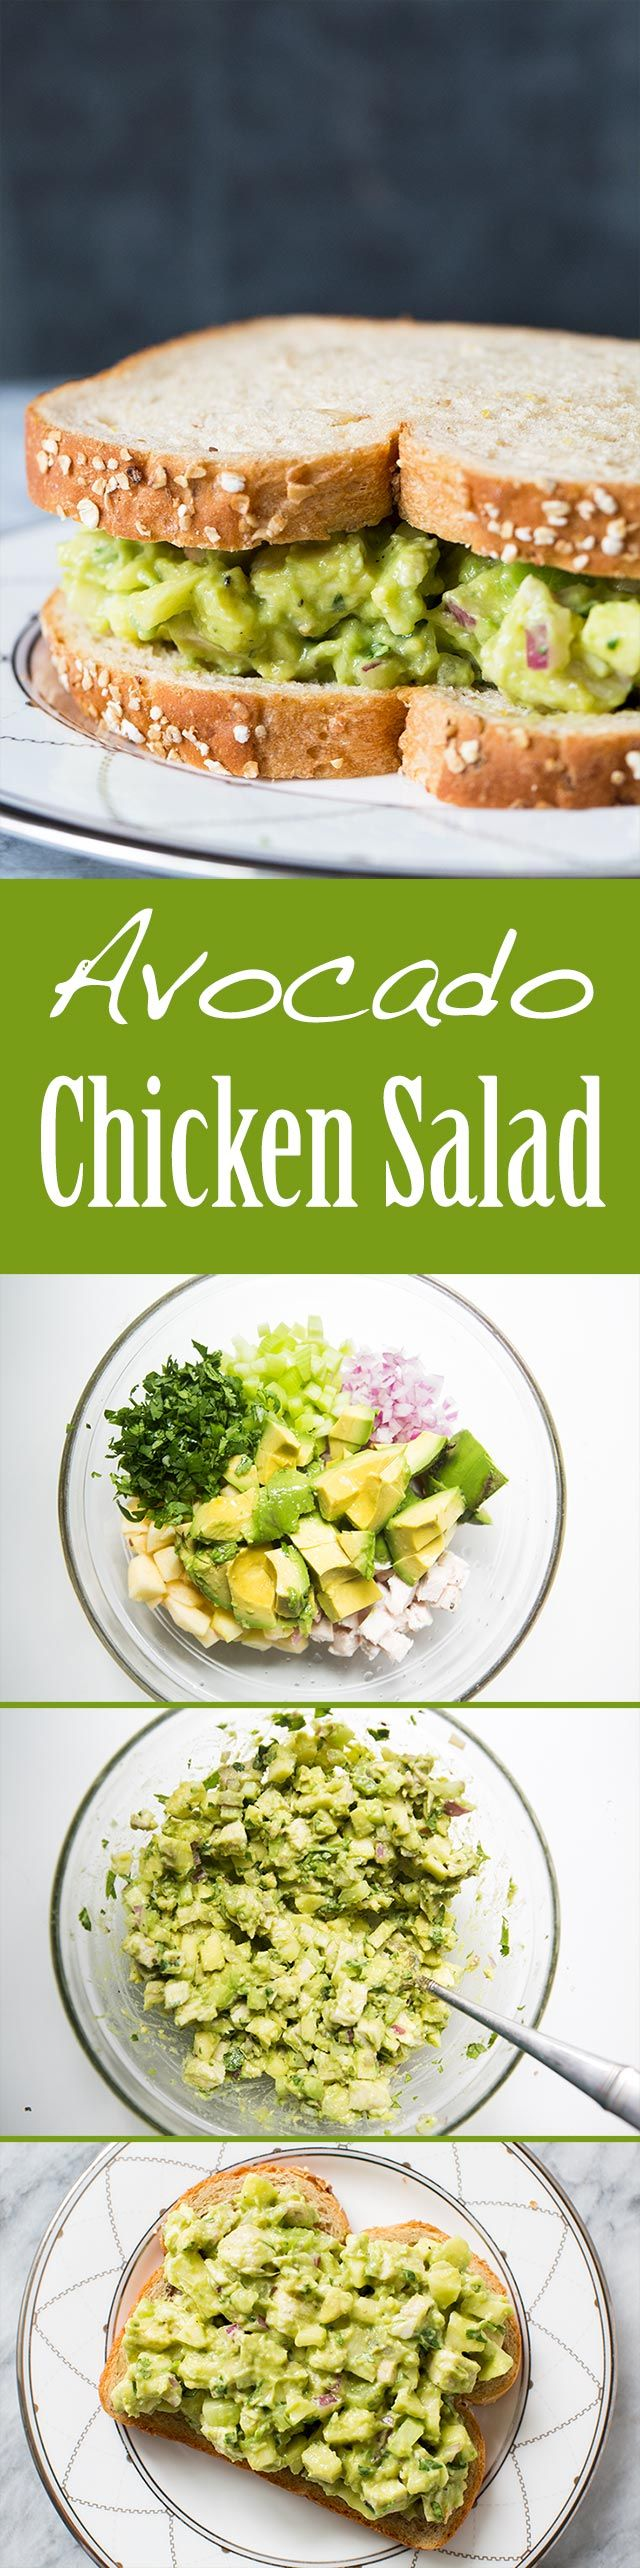 Easy and Healthy! Avocado chicken salad with avocado, chopped cooked chicken, apple, celery, and onion. No Mayo!